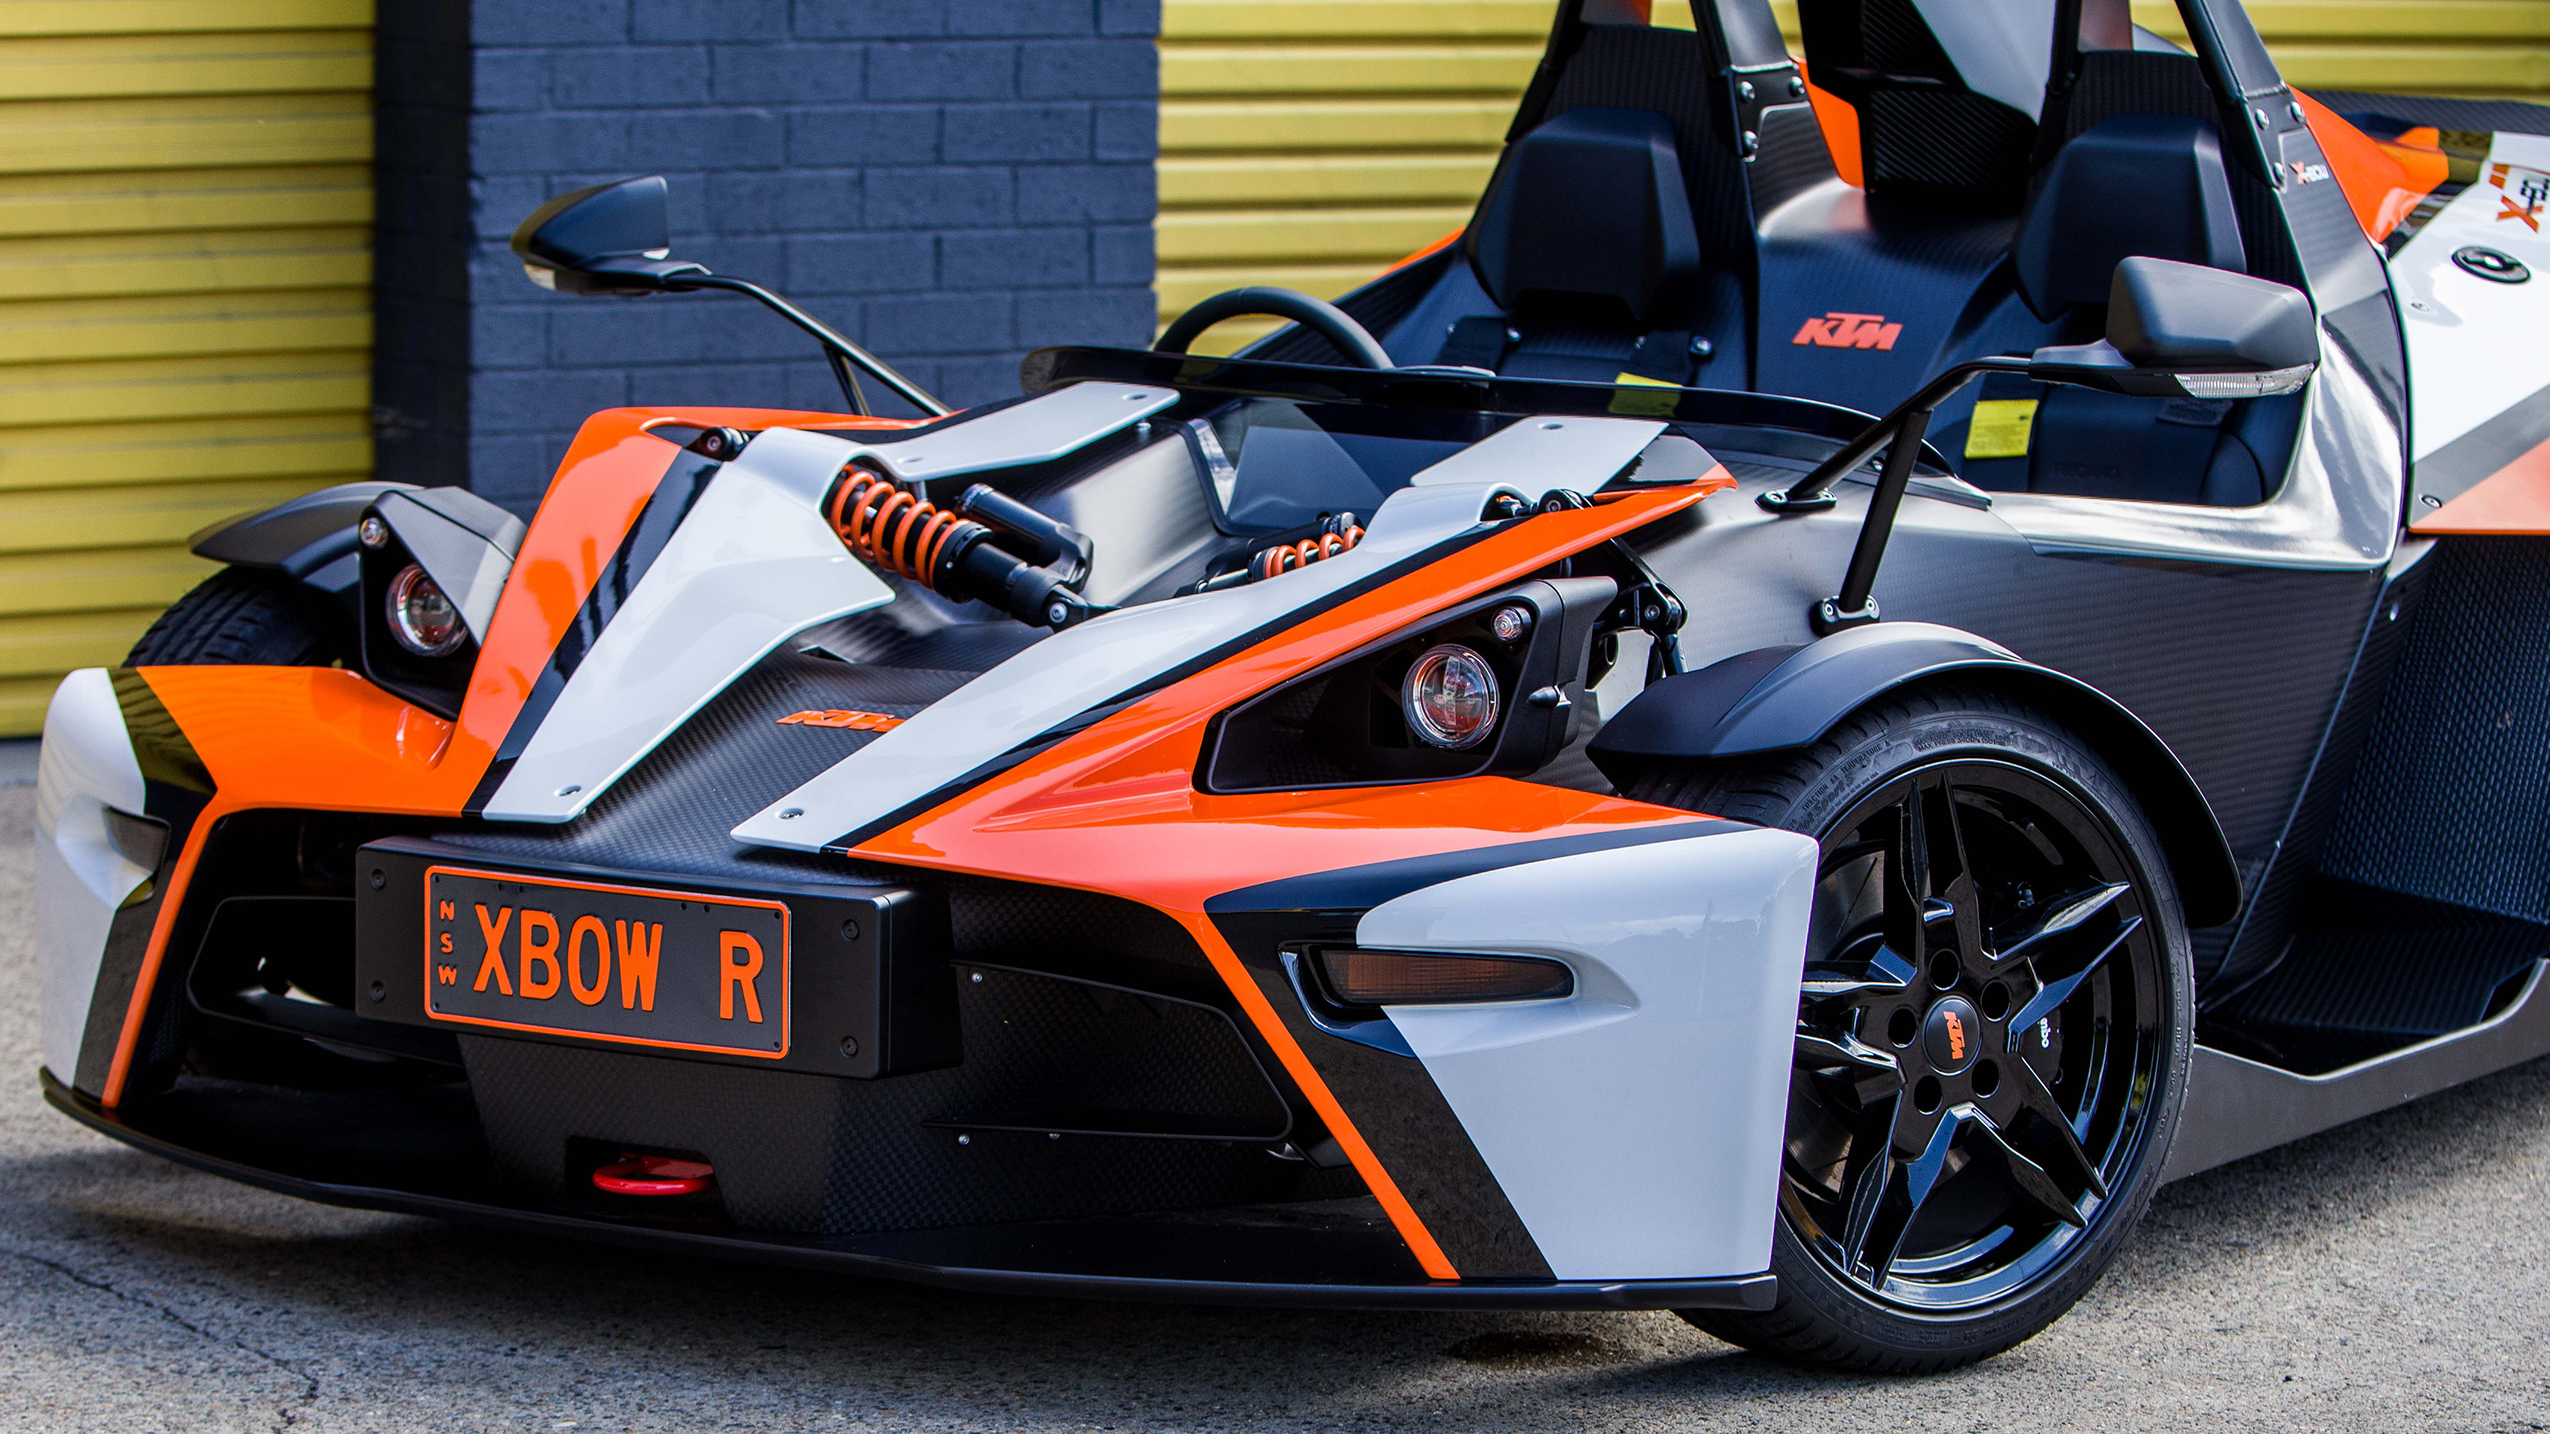 ktm x bow on sale in australia and it 39 s street legal photos caradvice. Black Bedroom Furniture Sets. Home Design Ideas